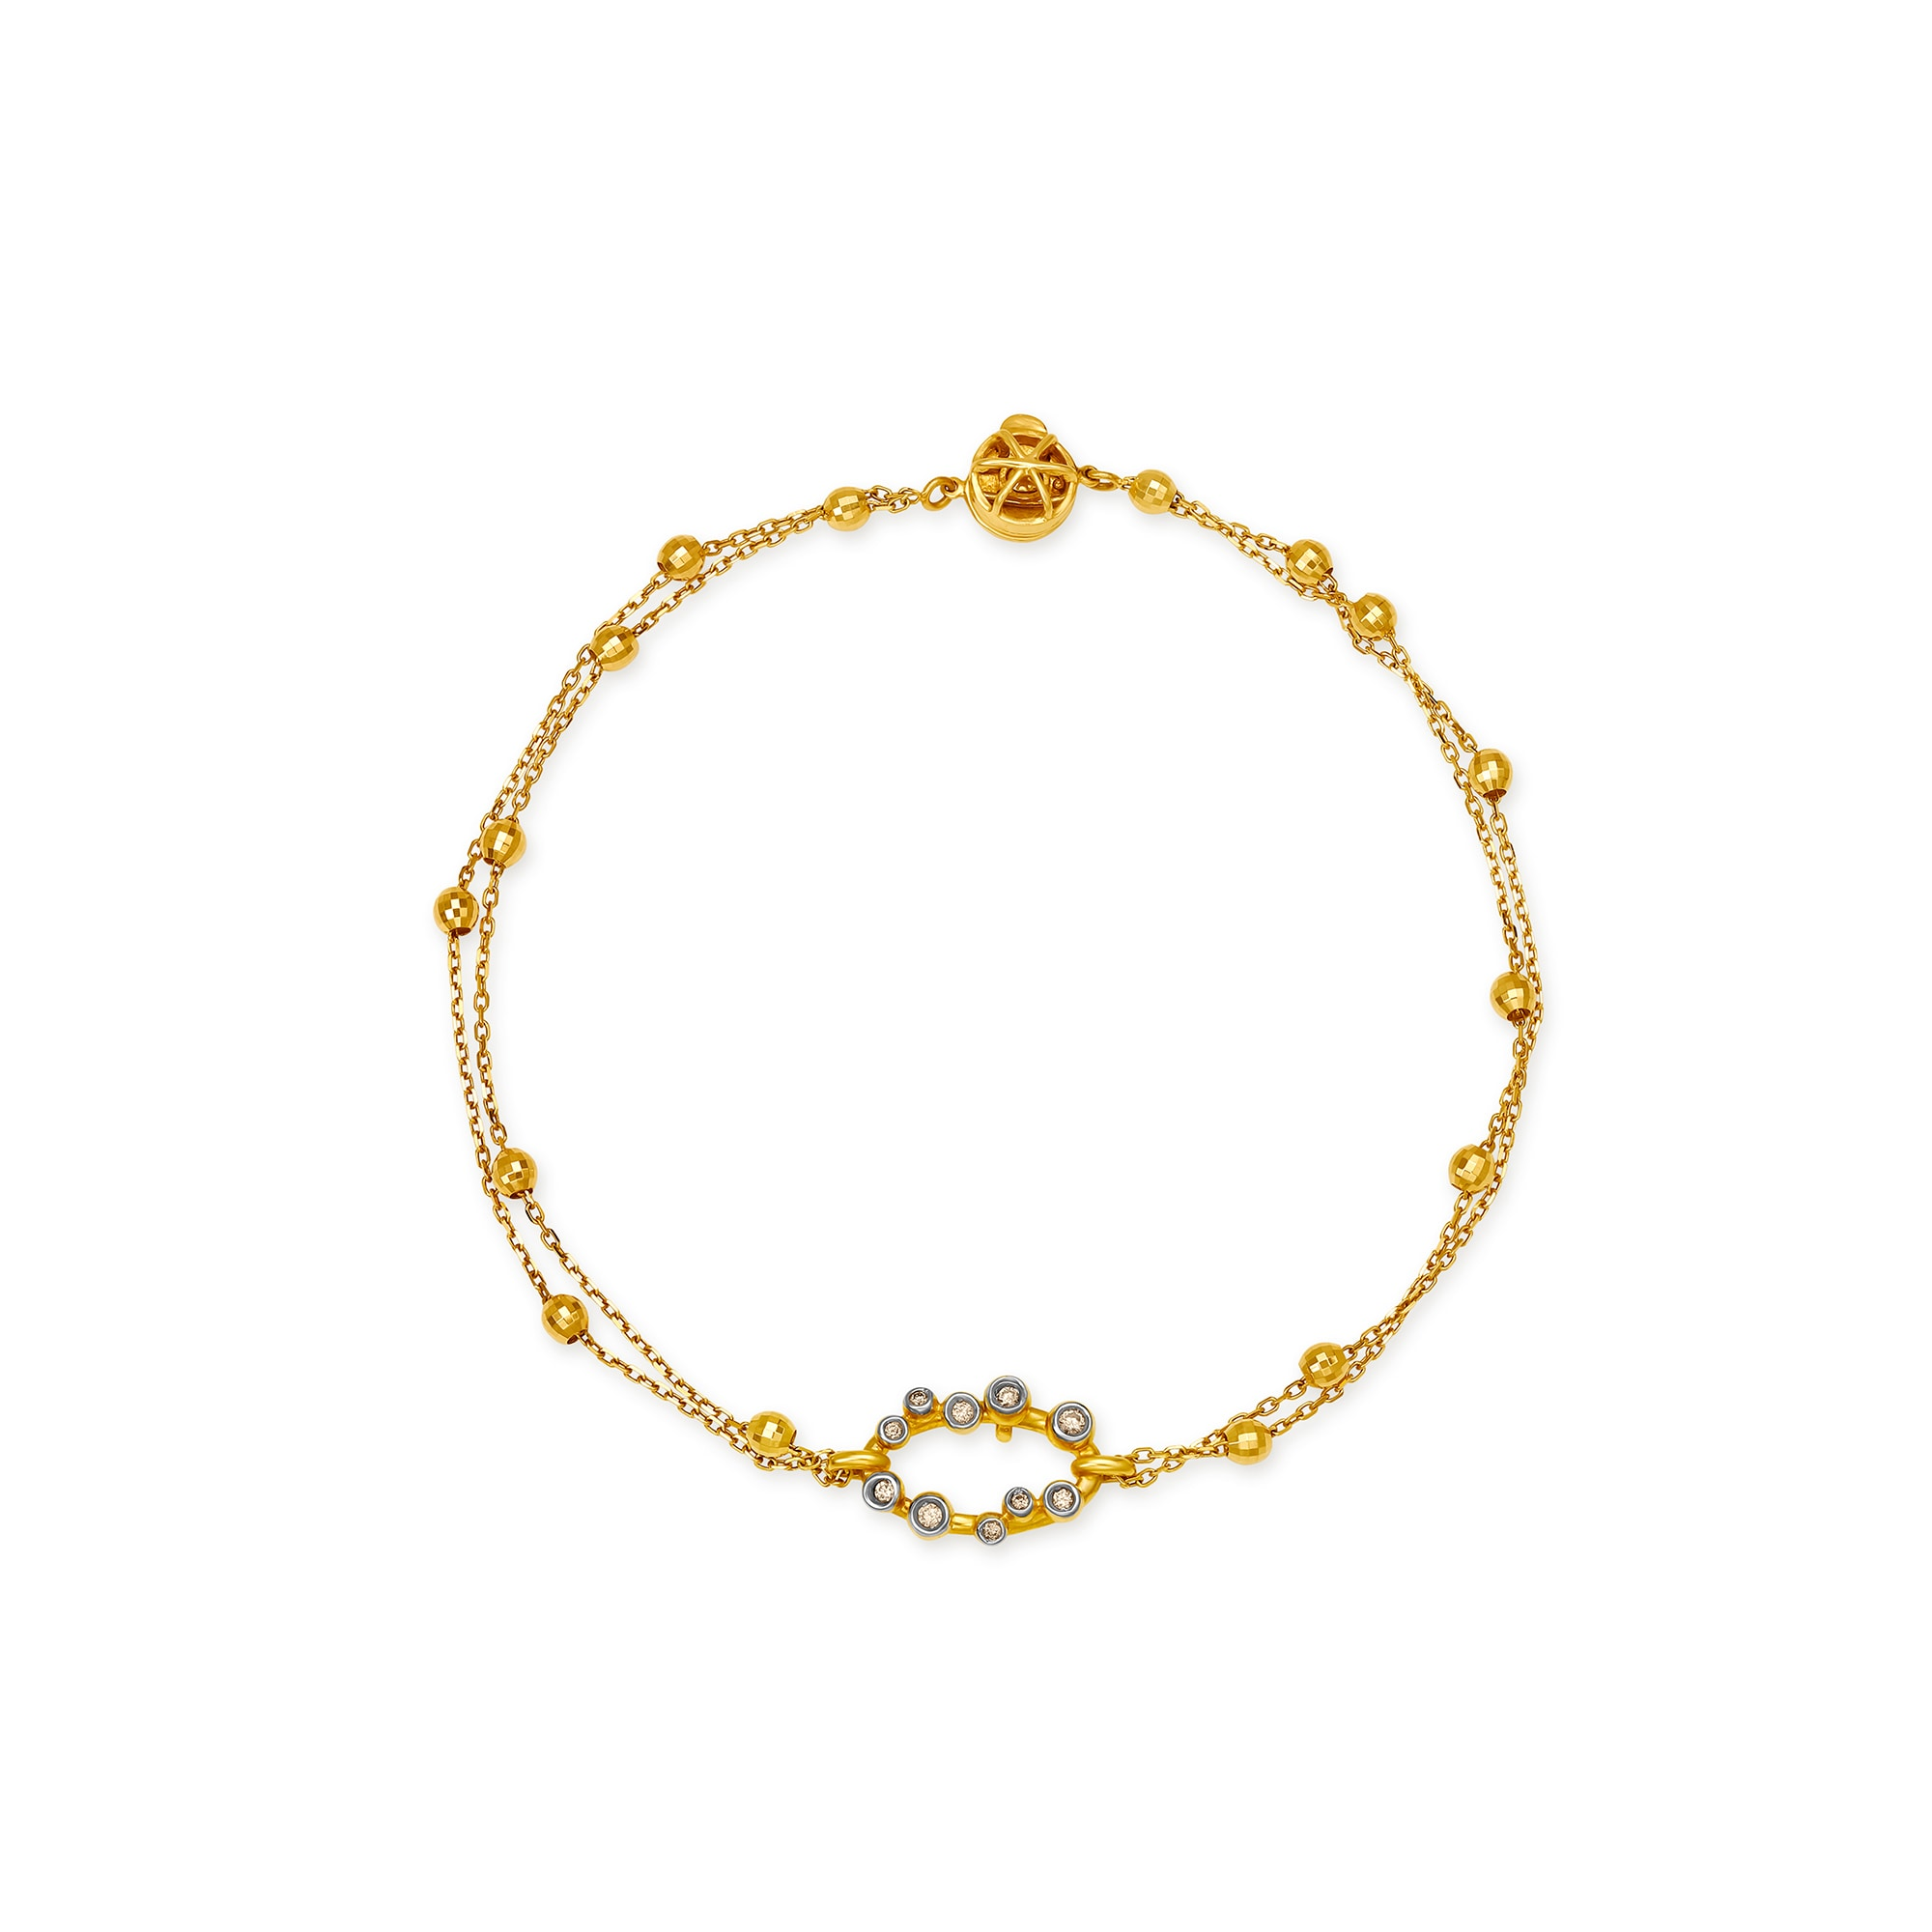 9852fdb62e8b2 Mia Everyday Essentials by Tanishq 14KT Yellow Gold Bracelet